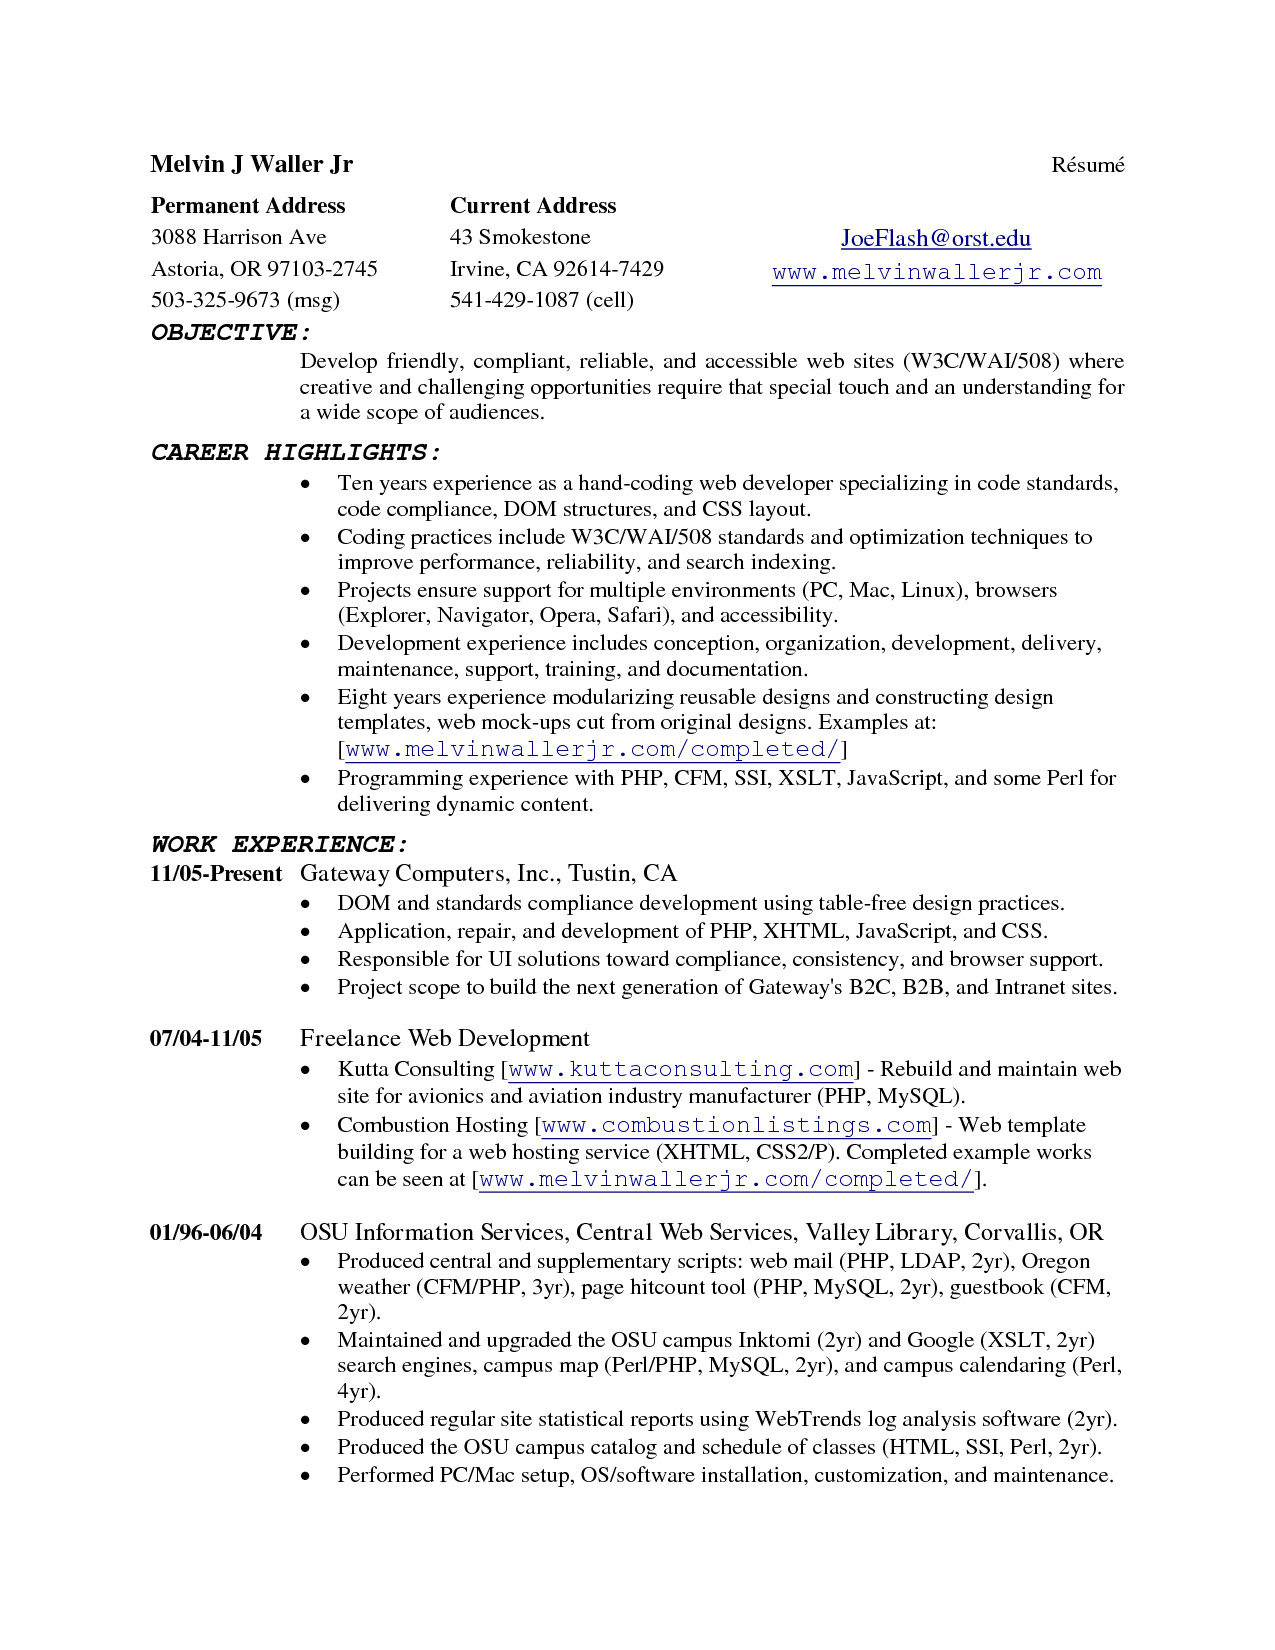 Open Office Cover Letter Template Free - Writer Resume Template Download Sample Technical Resume Diplomatic